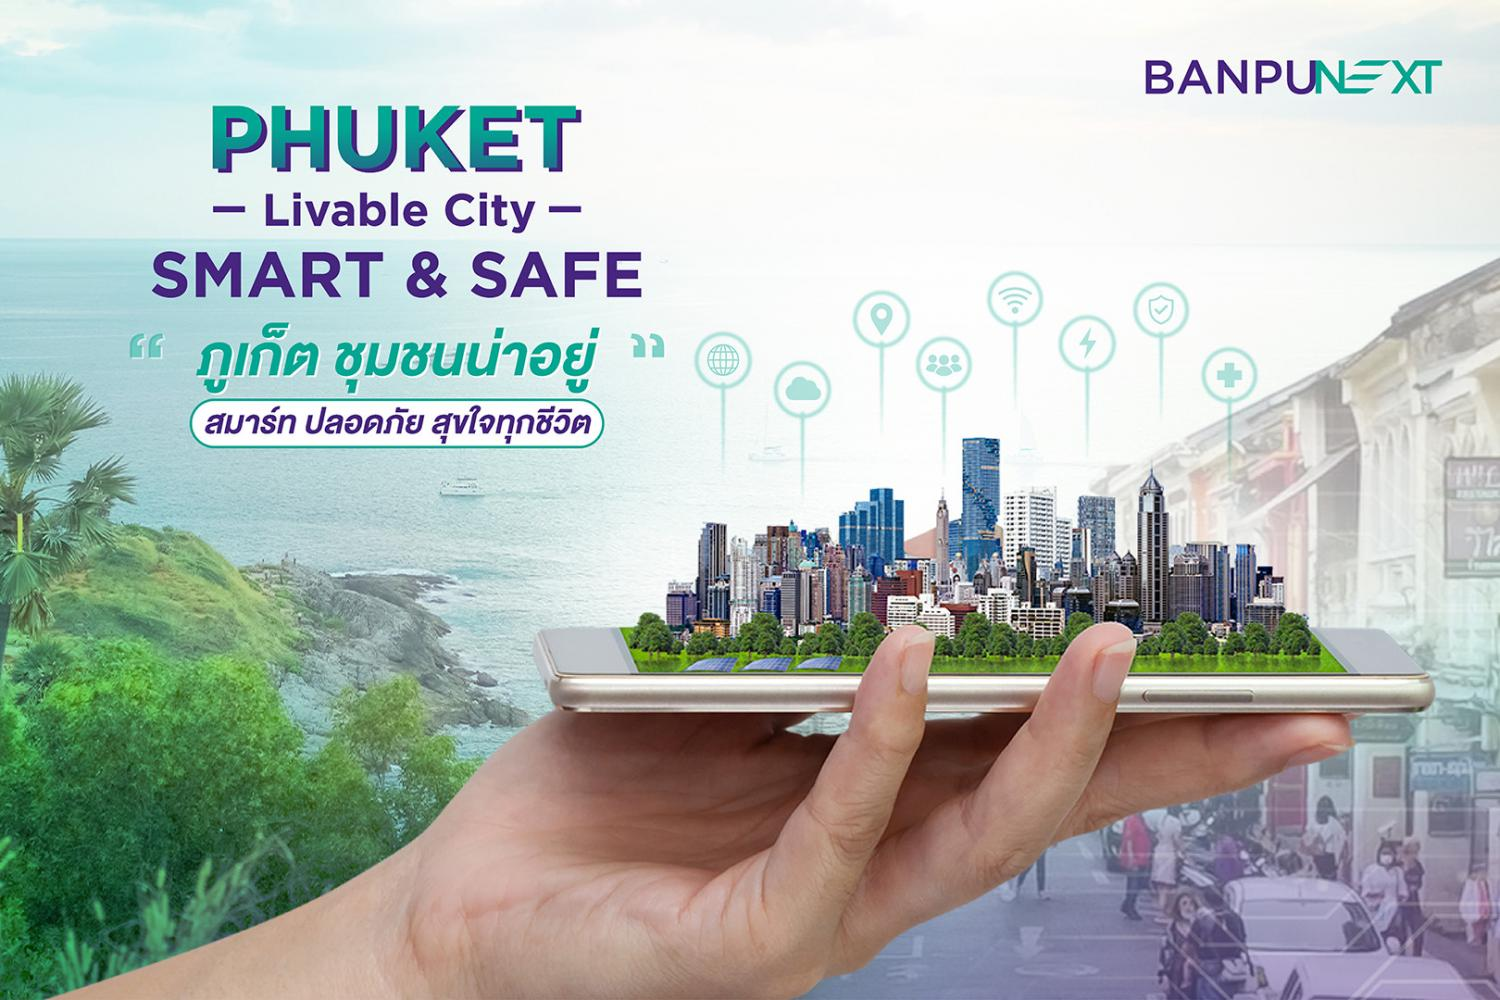 The company is currently showcasing a smart safety zone project in Phuket.